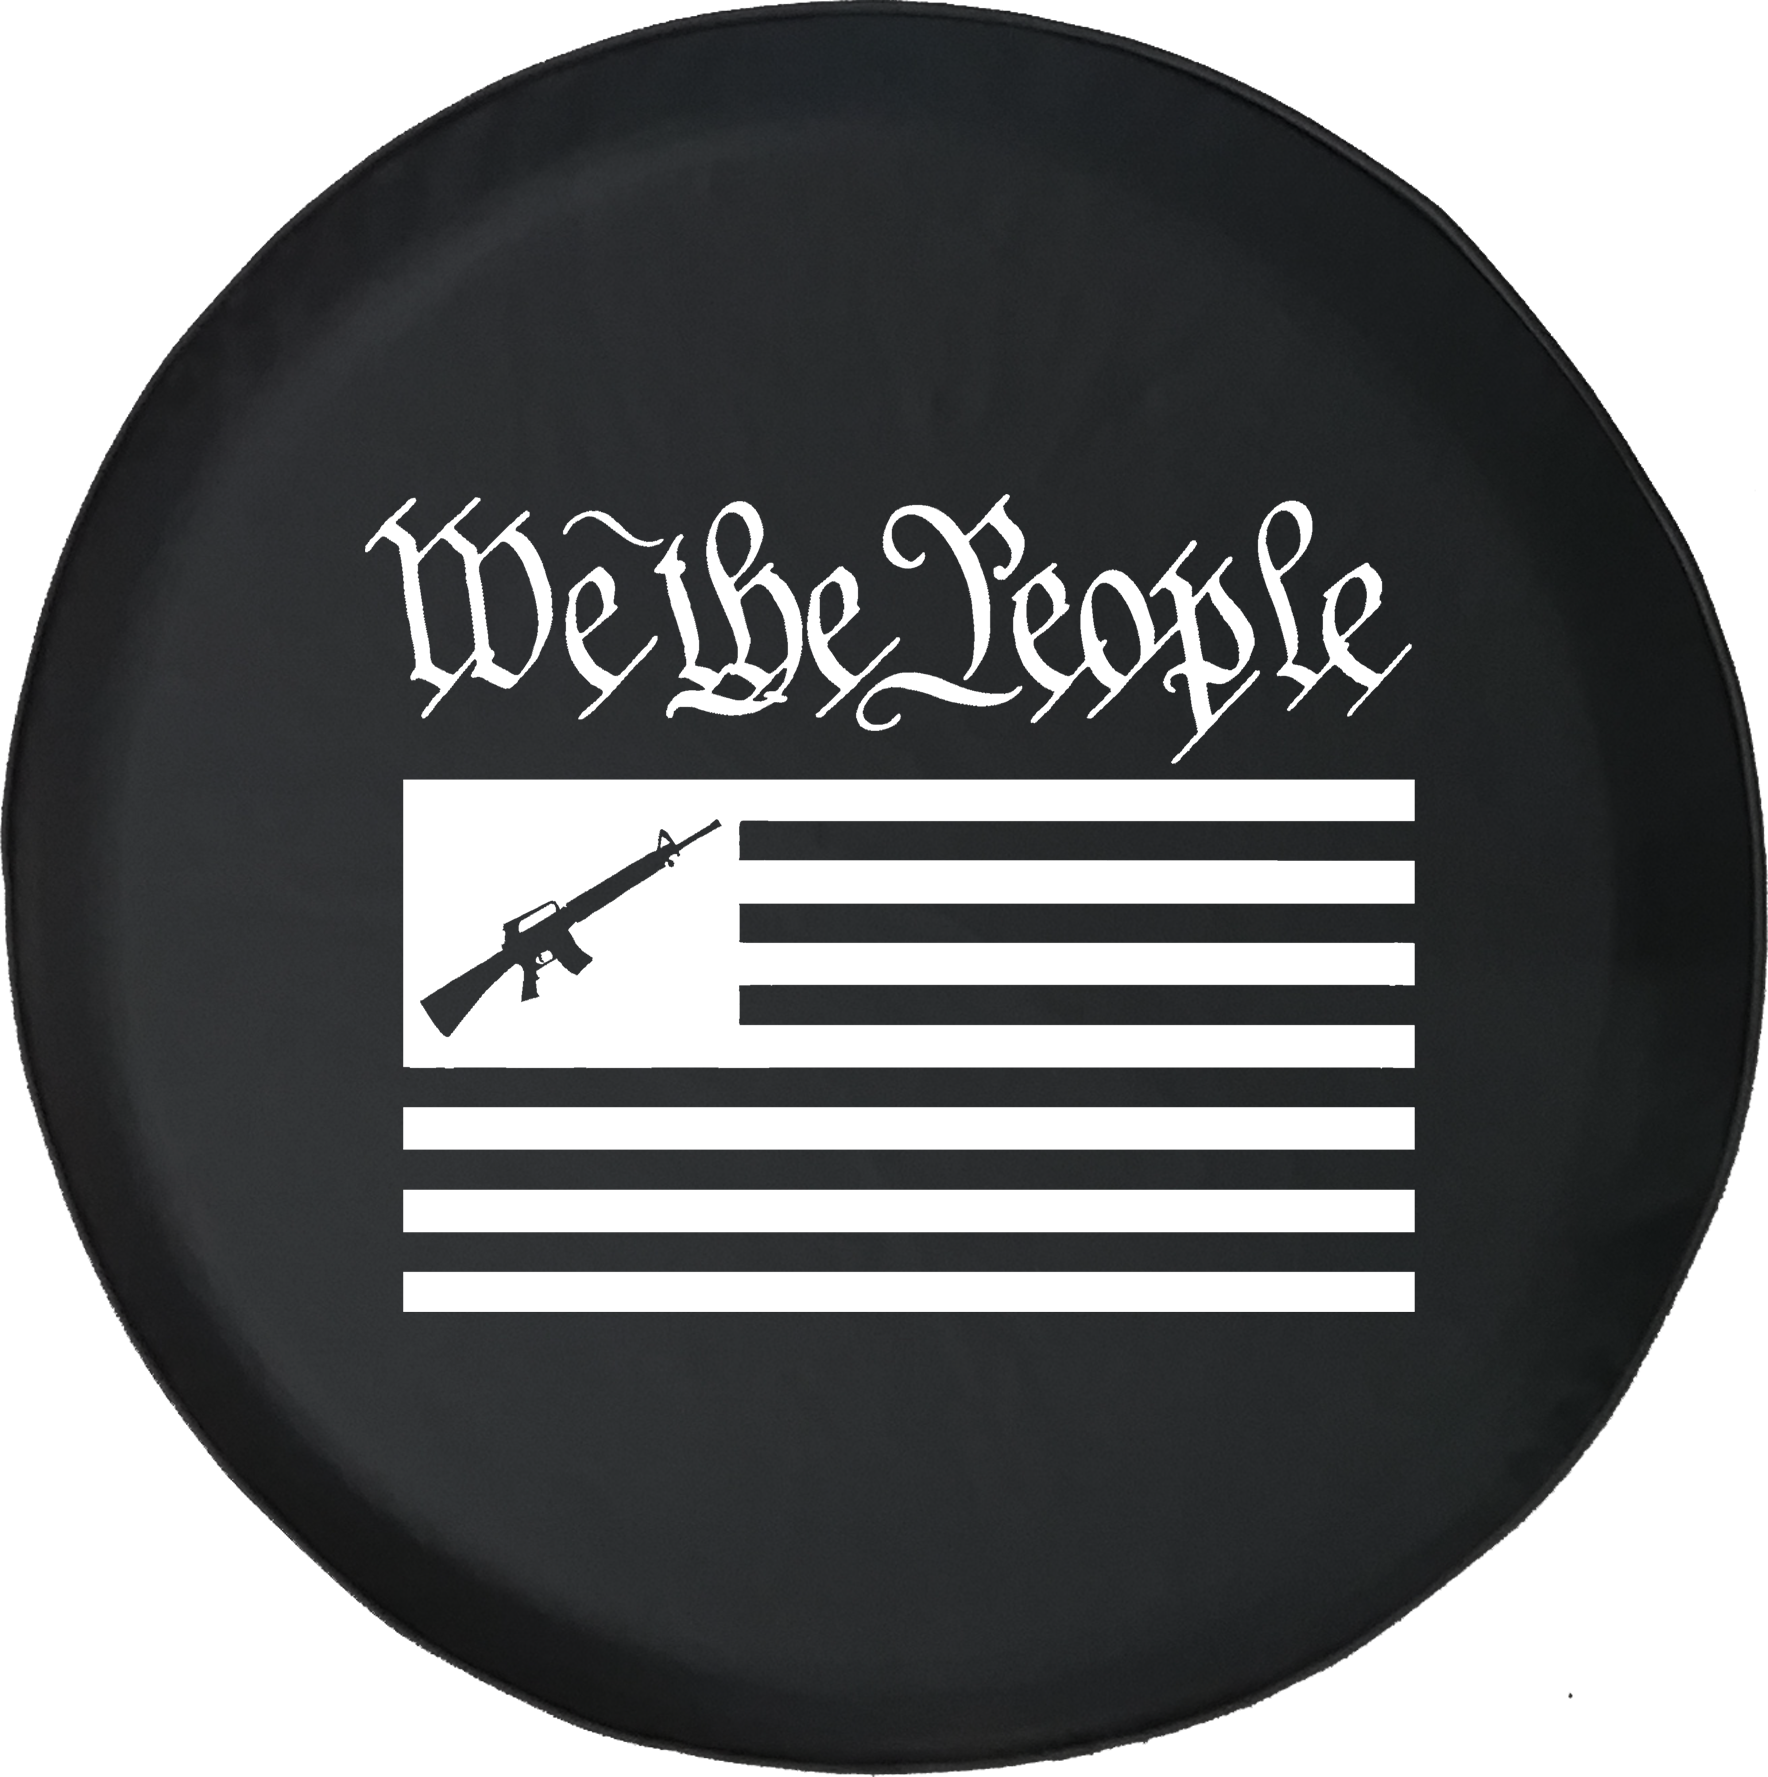 JKqueen WWG1WGA Qanon Political Conspiracy Spare Tire Cover Universal Wheel Tire Cover for Jeep Trailer RV SUV Truck Camper Travel Trailer Accessories